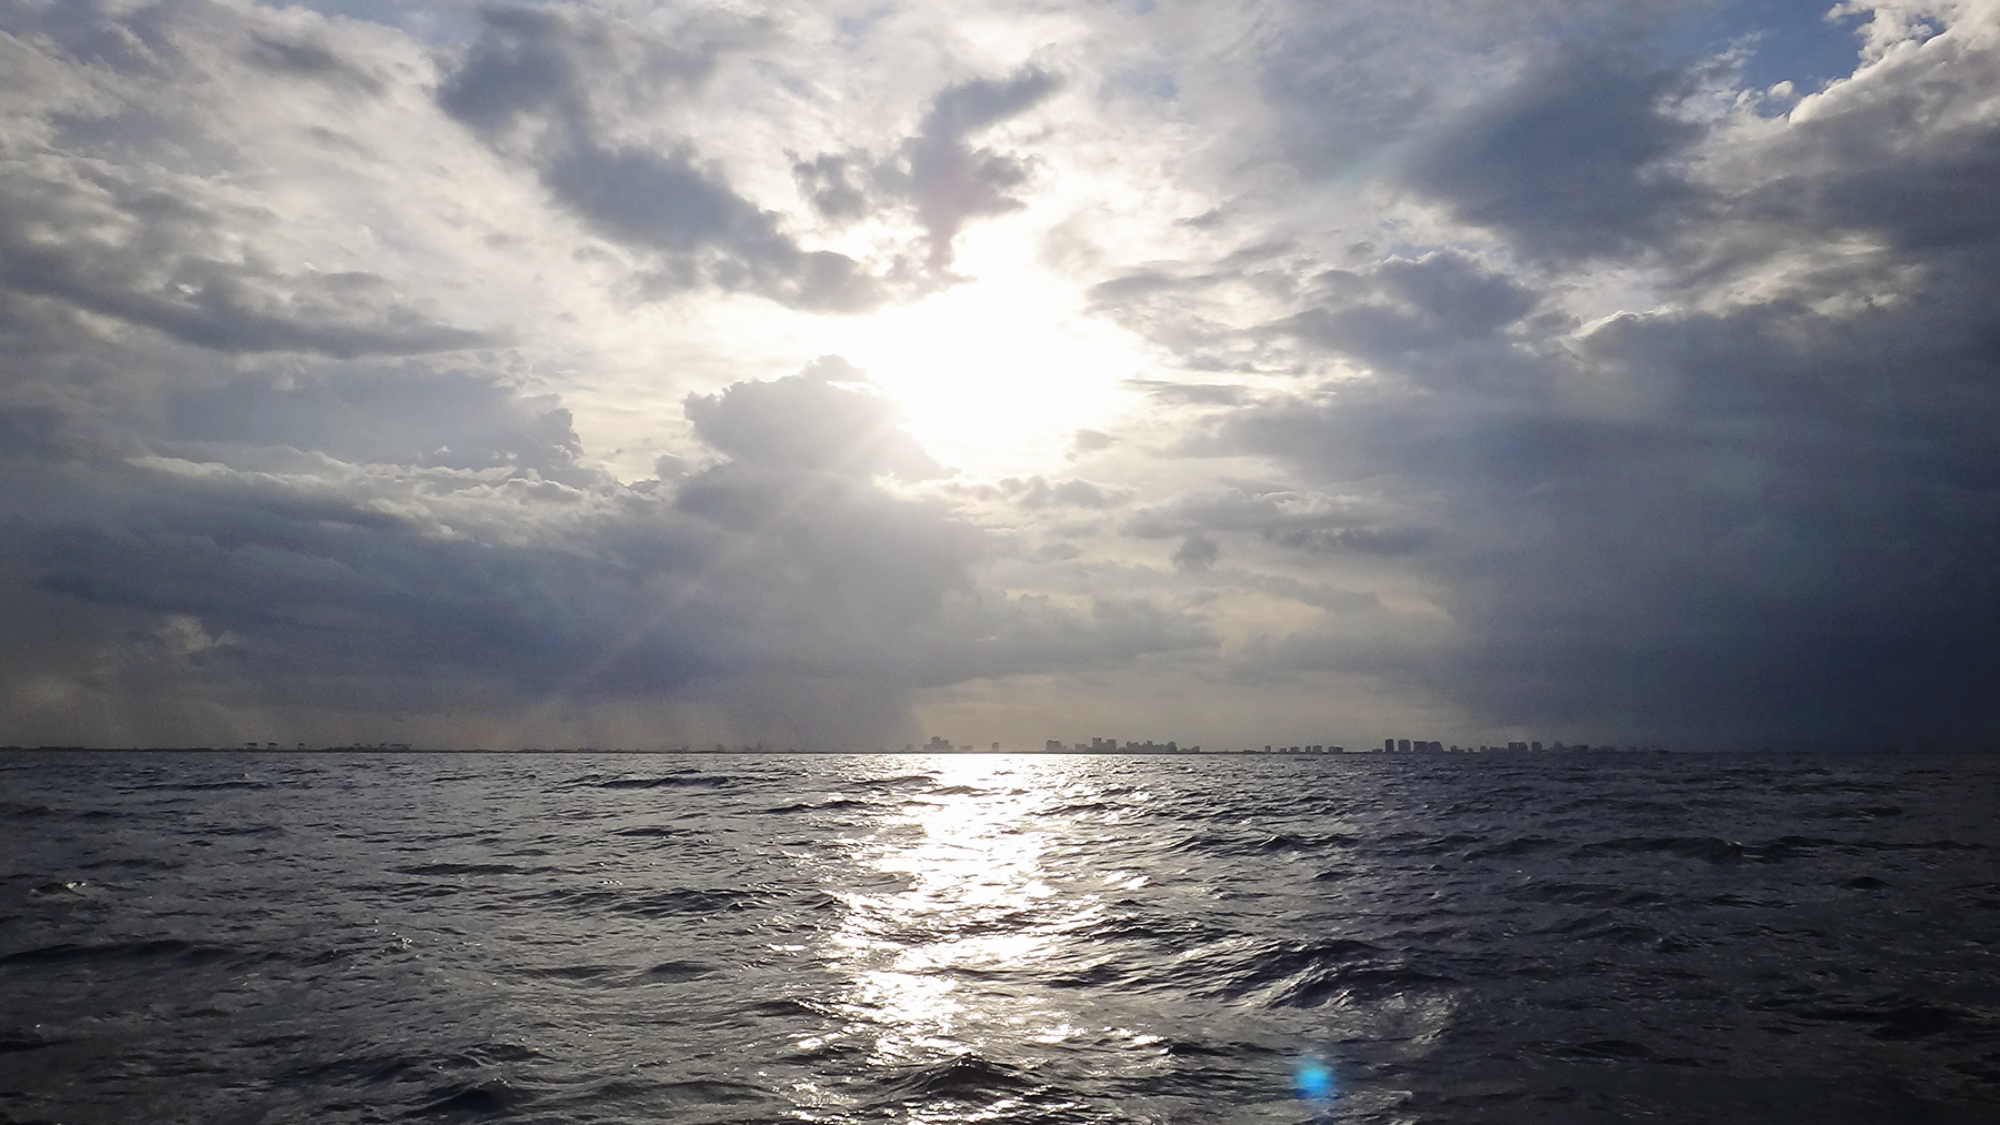 Fort Lauderdale from the Gulf Stream